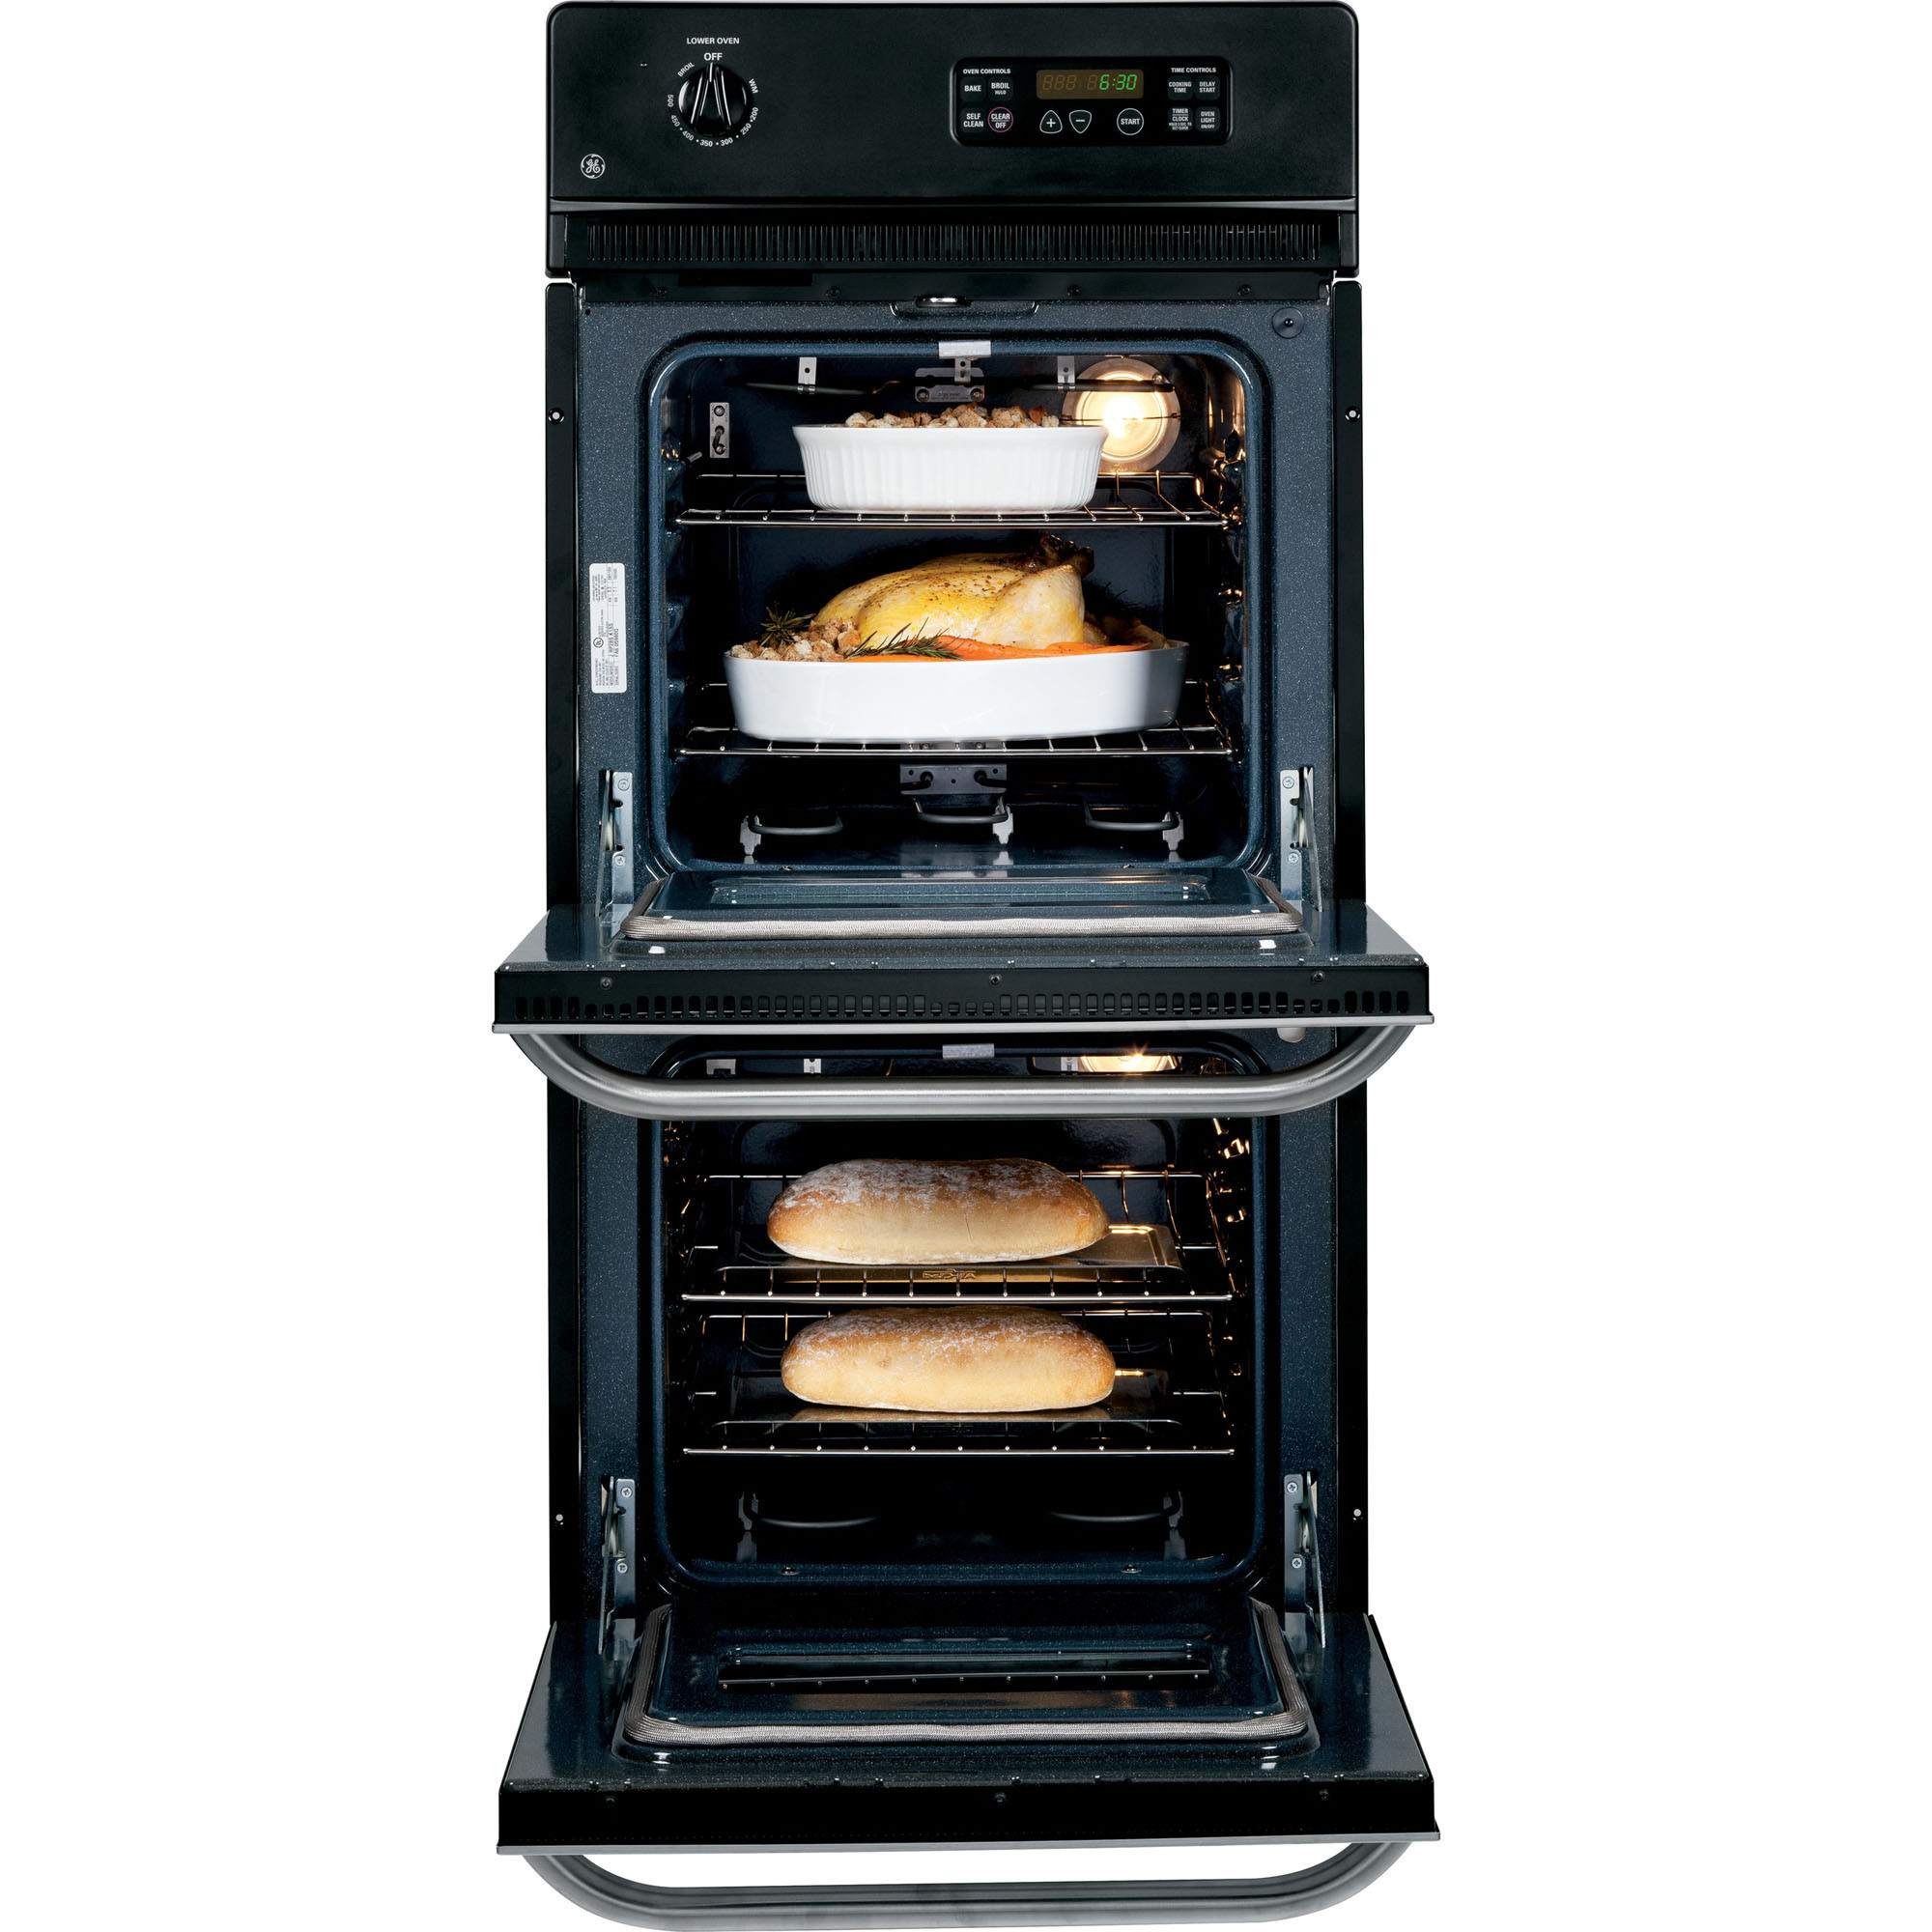 "GE Appliances JRP28SKSS 24"" Double Wall Oven w/ Self Clean Upper Oven"